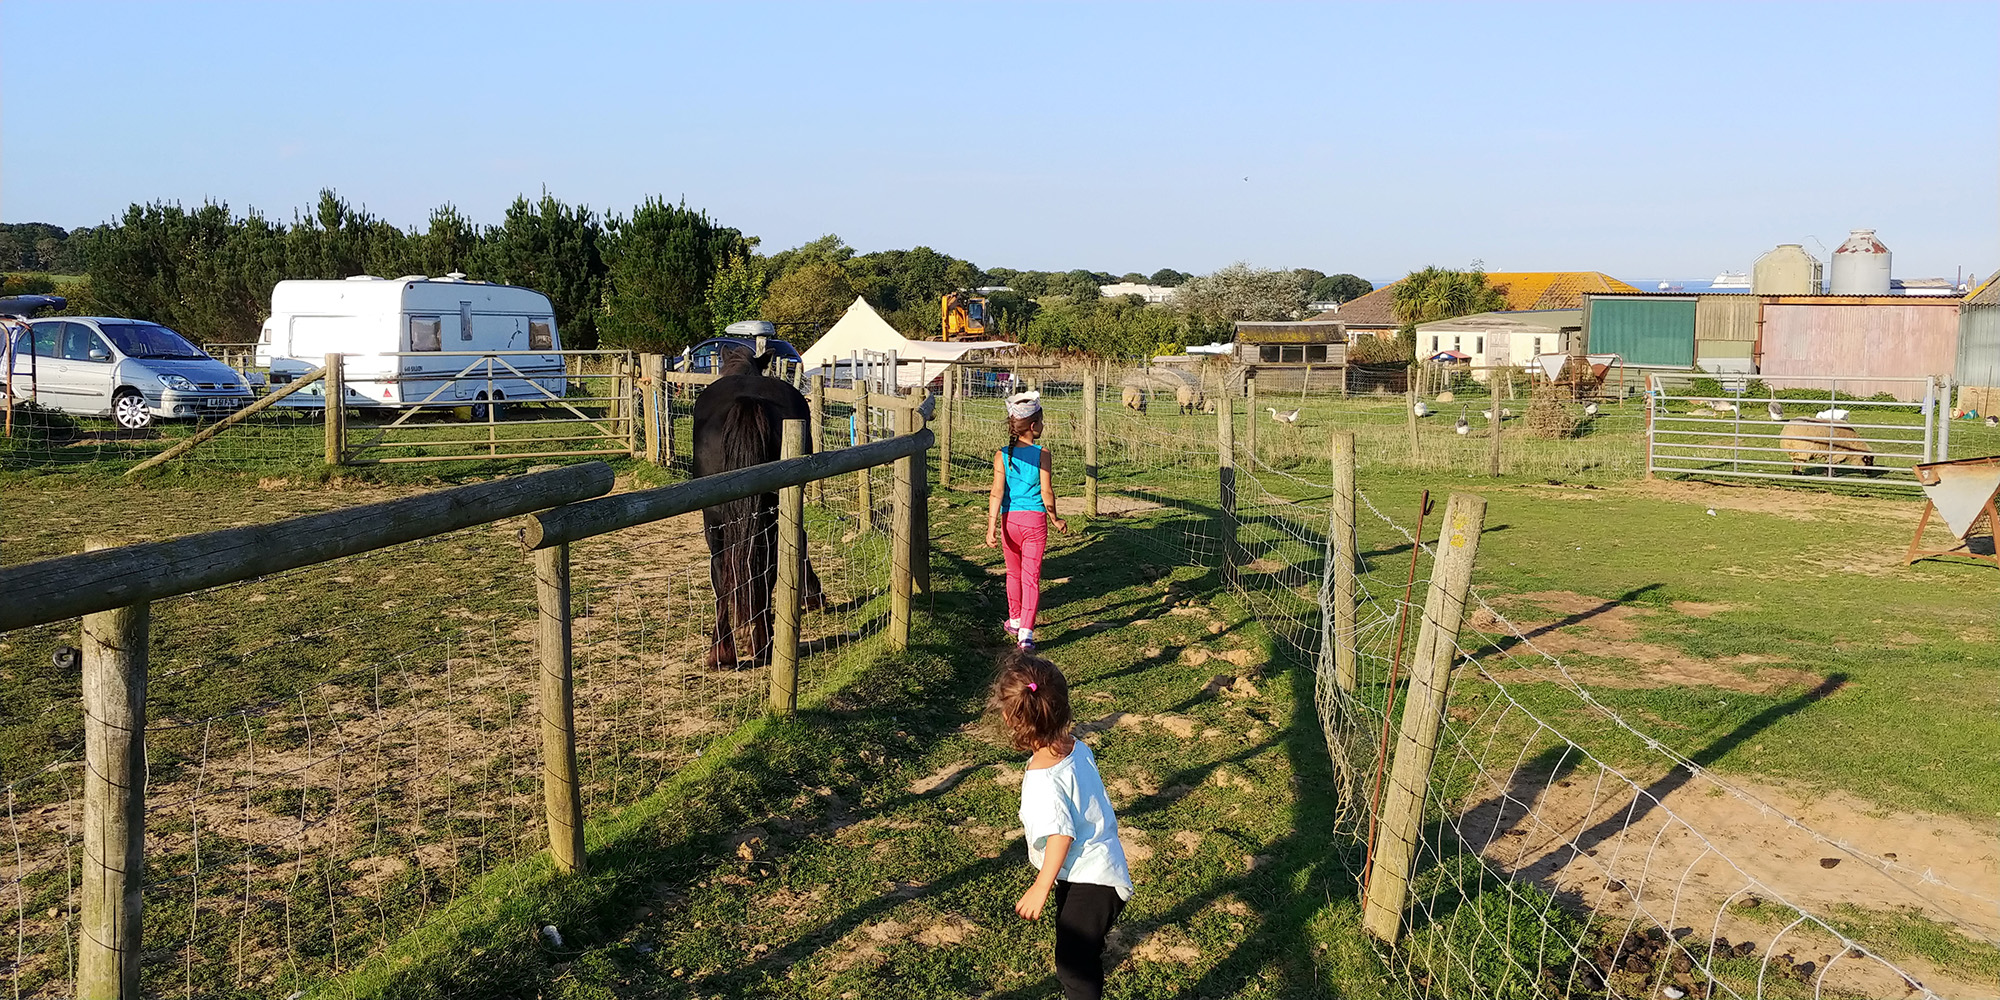 Our biggest and smallest girl exploring the paths around the farm. You can see the point of our tent in the background.